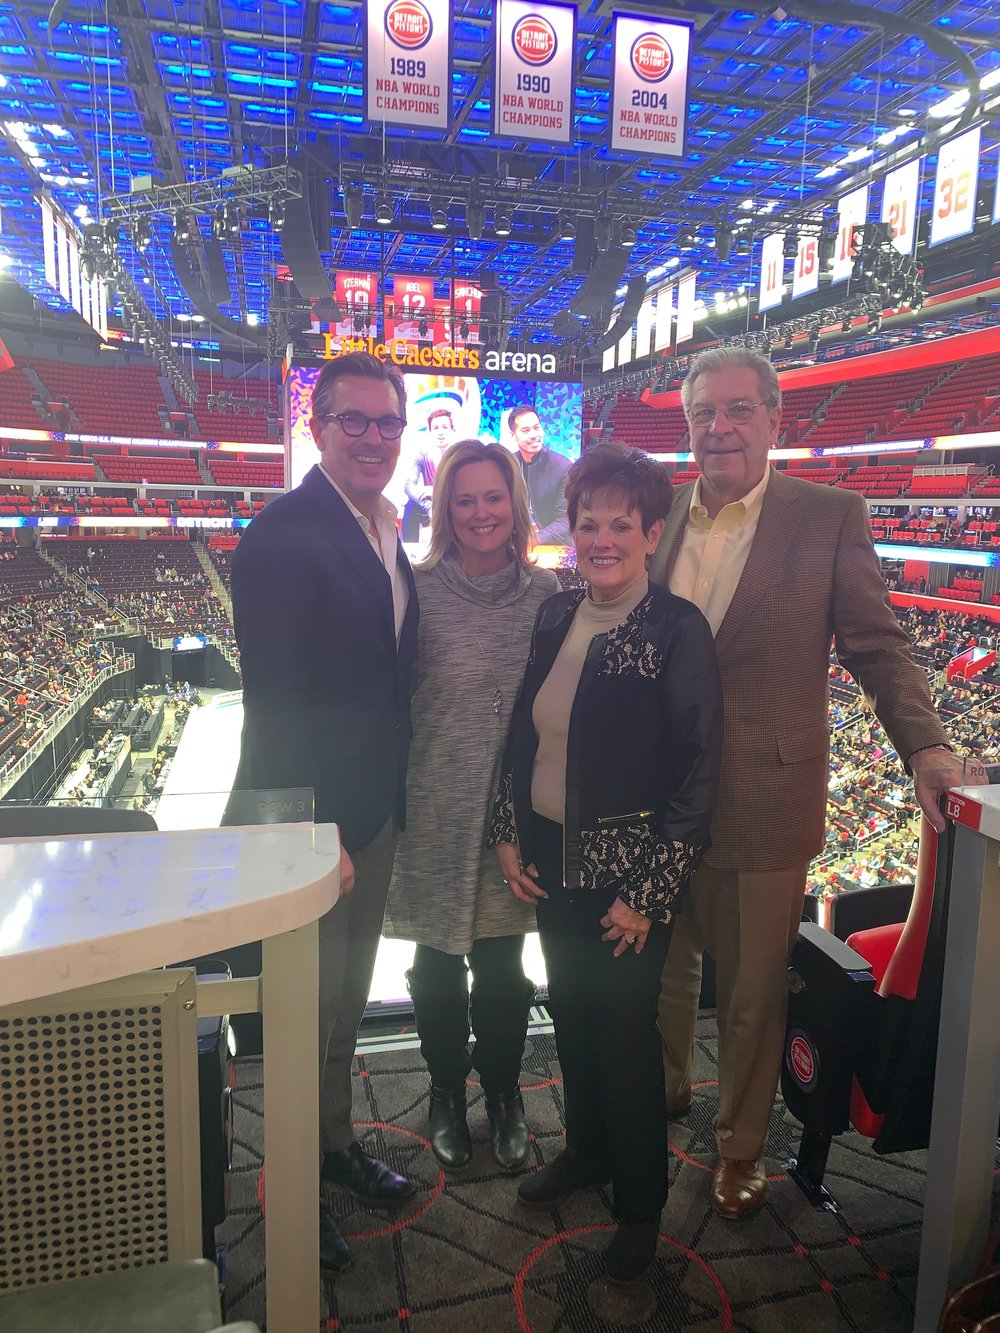 Marc Lagrois, Michelle Lagrois Carey, Glenda Lagrois and Bill Frohreip at Little Caesar's Arena